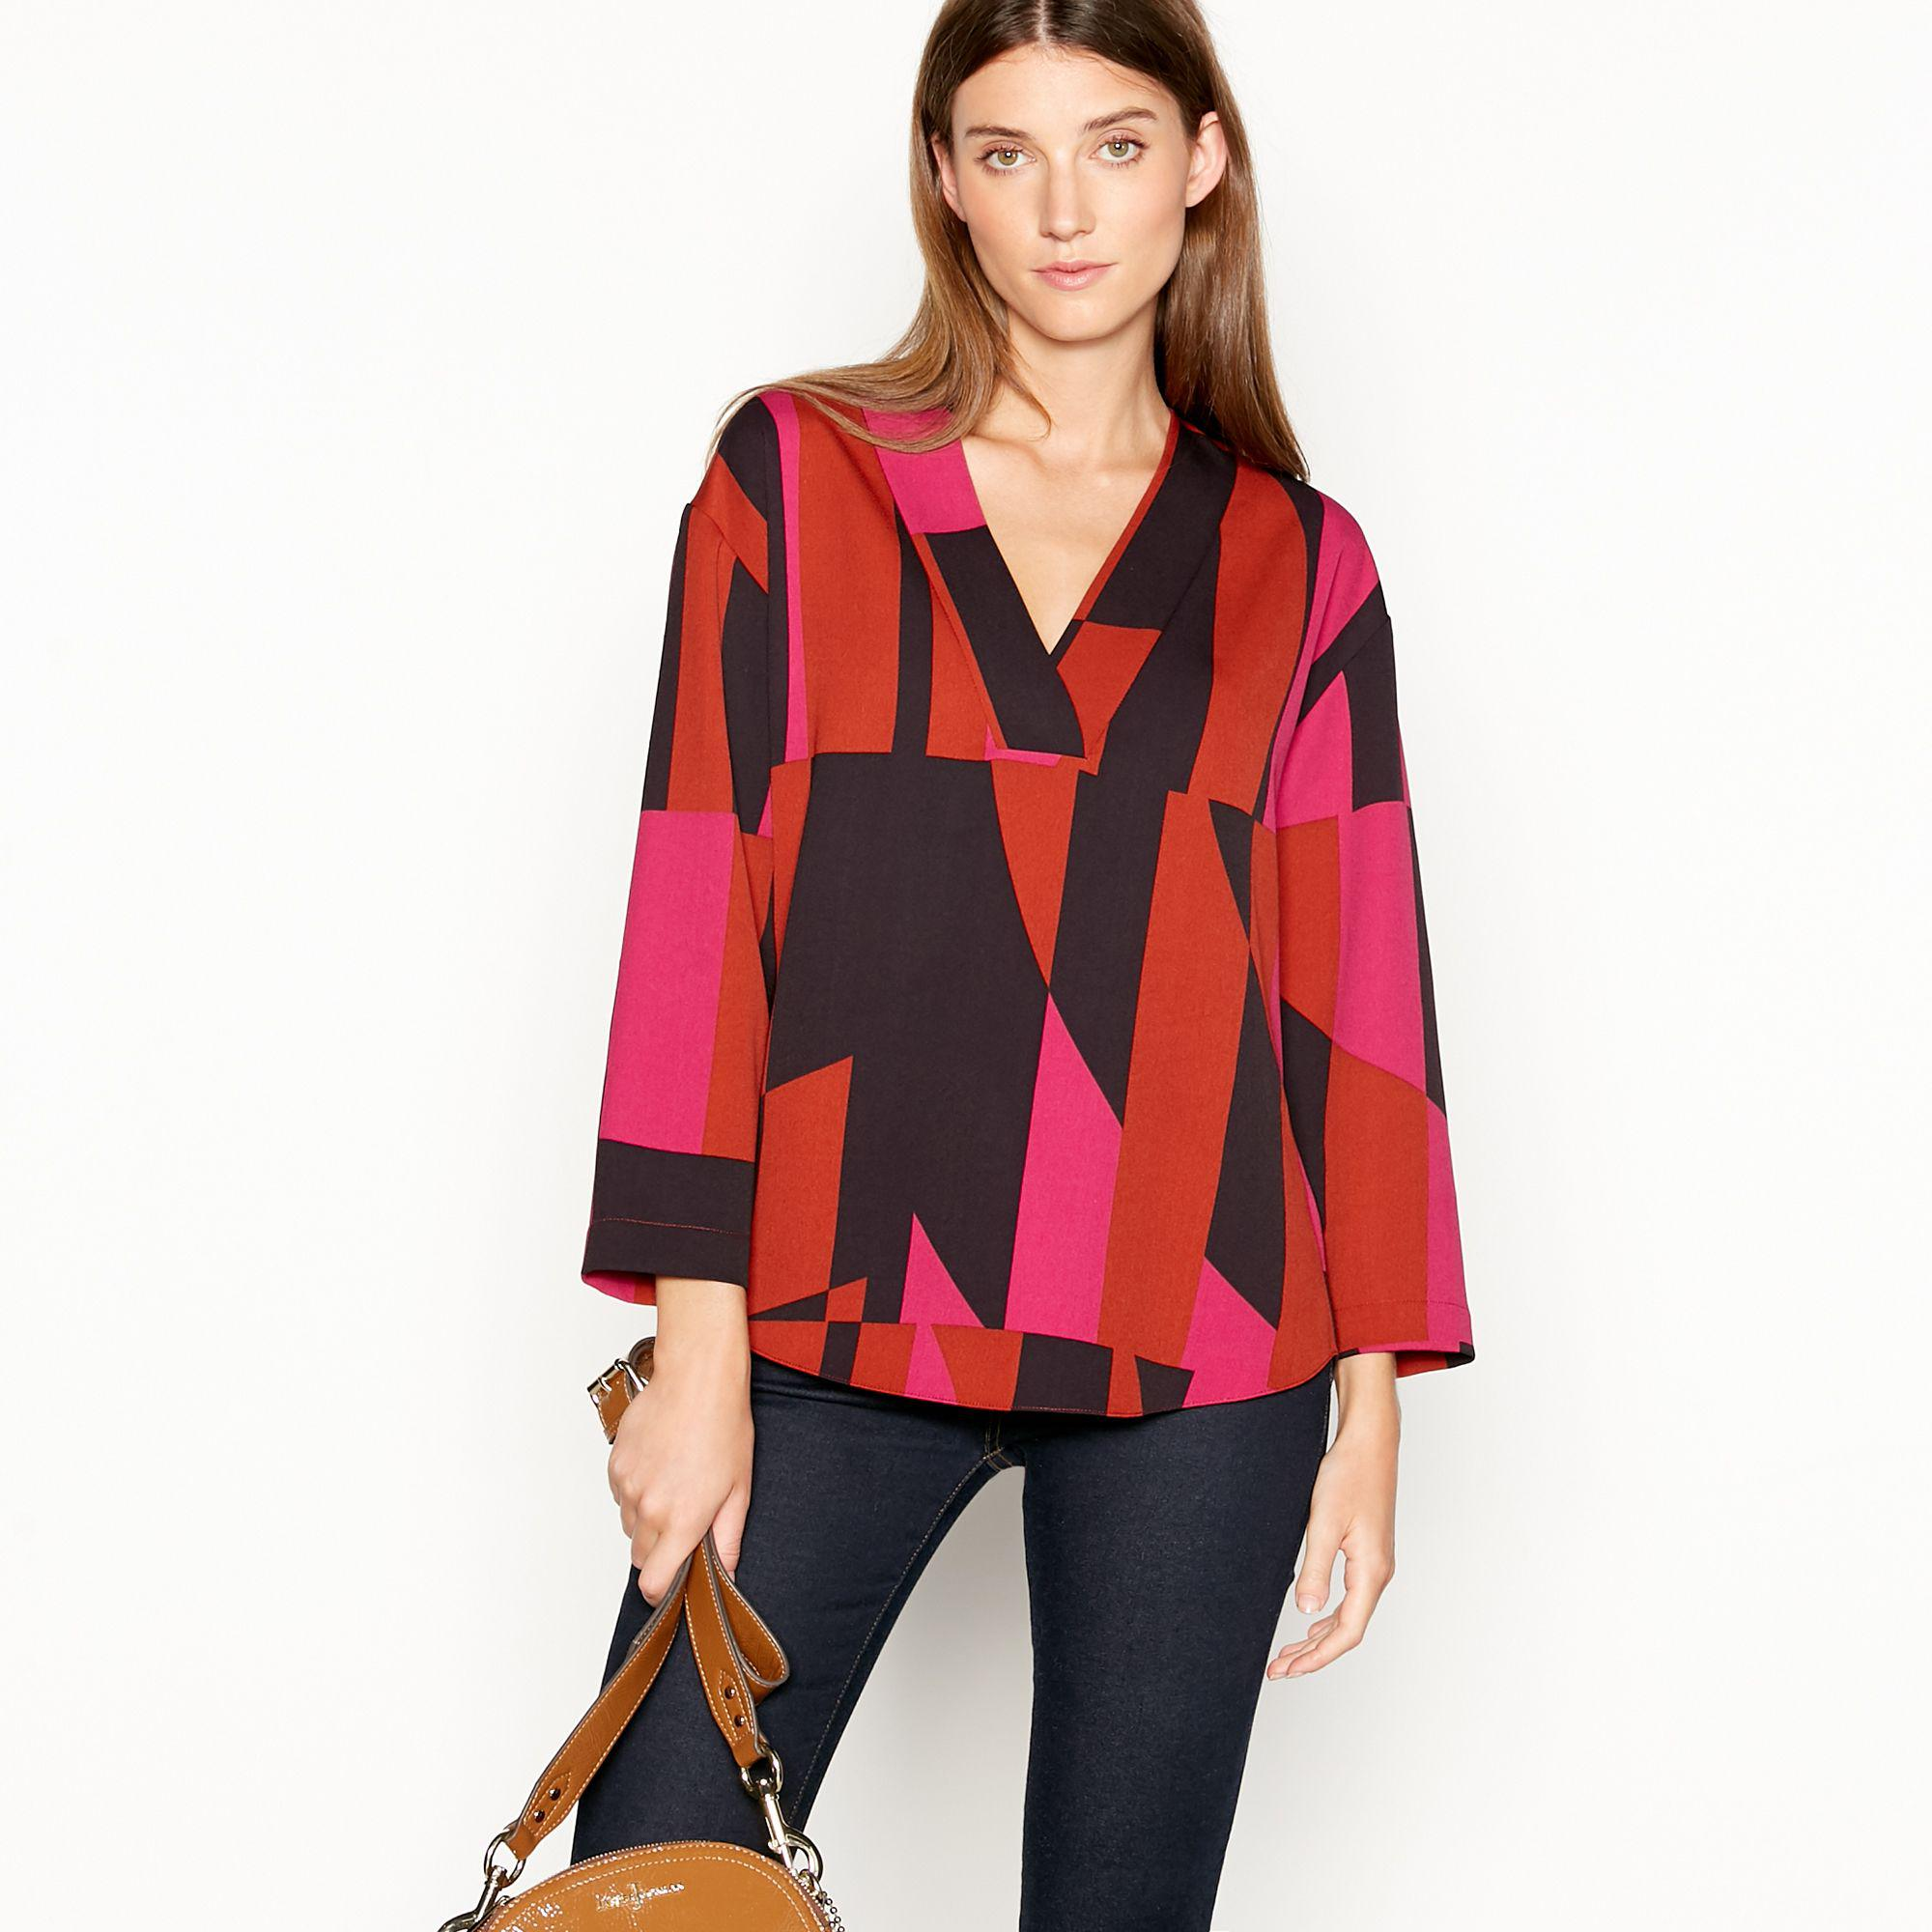 f4da21ee880e4f J By Jasper Conran Multicoloured  bullseye  Print Shirt in Red - Lyst